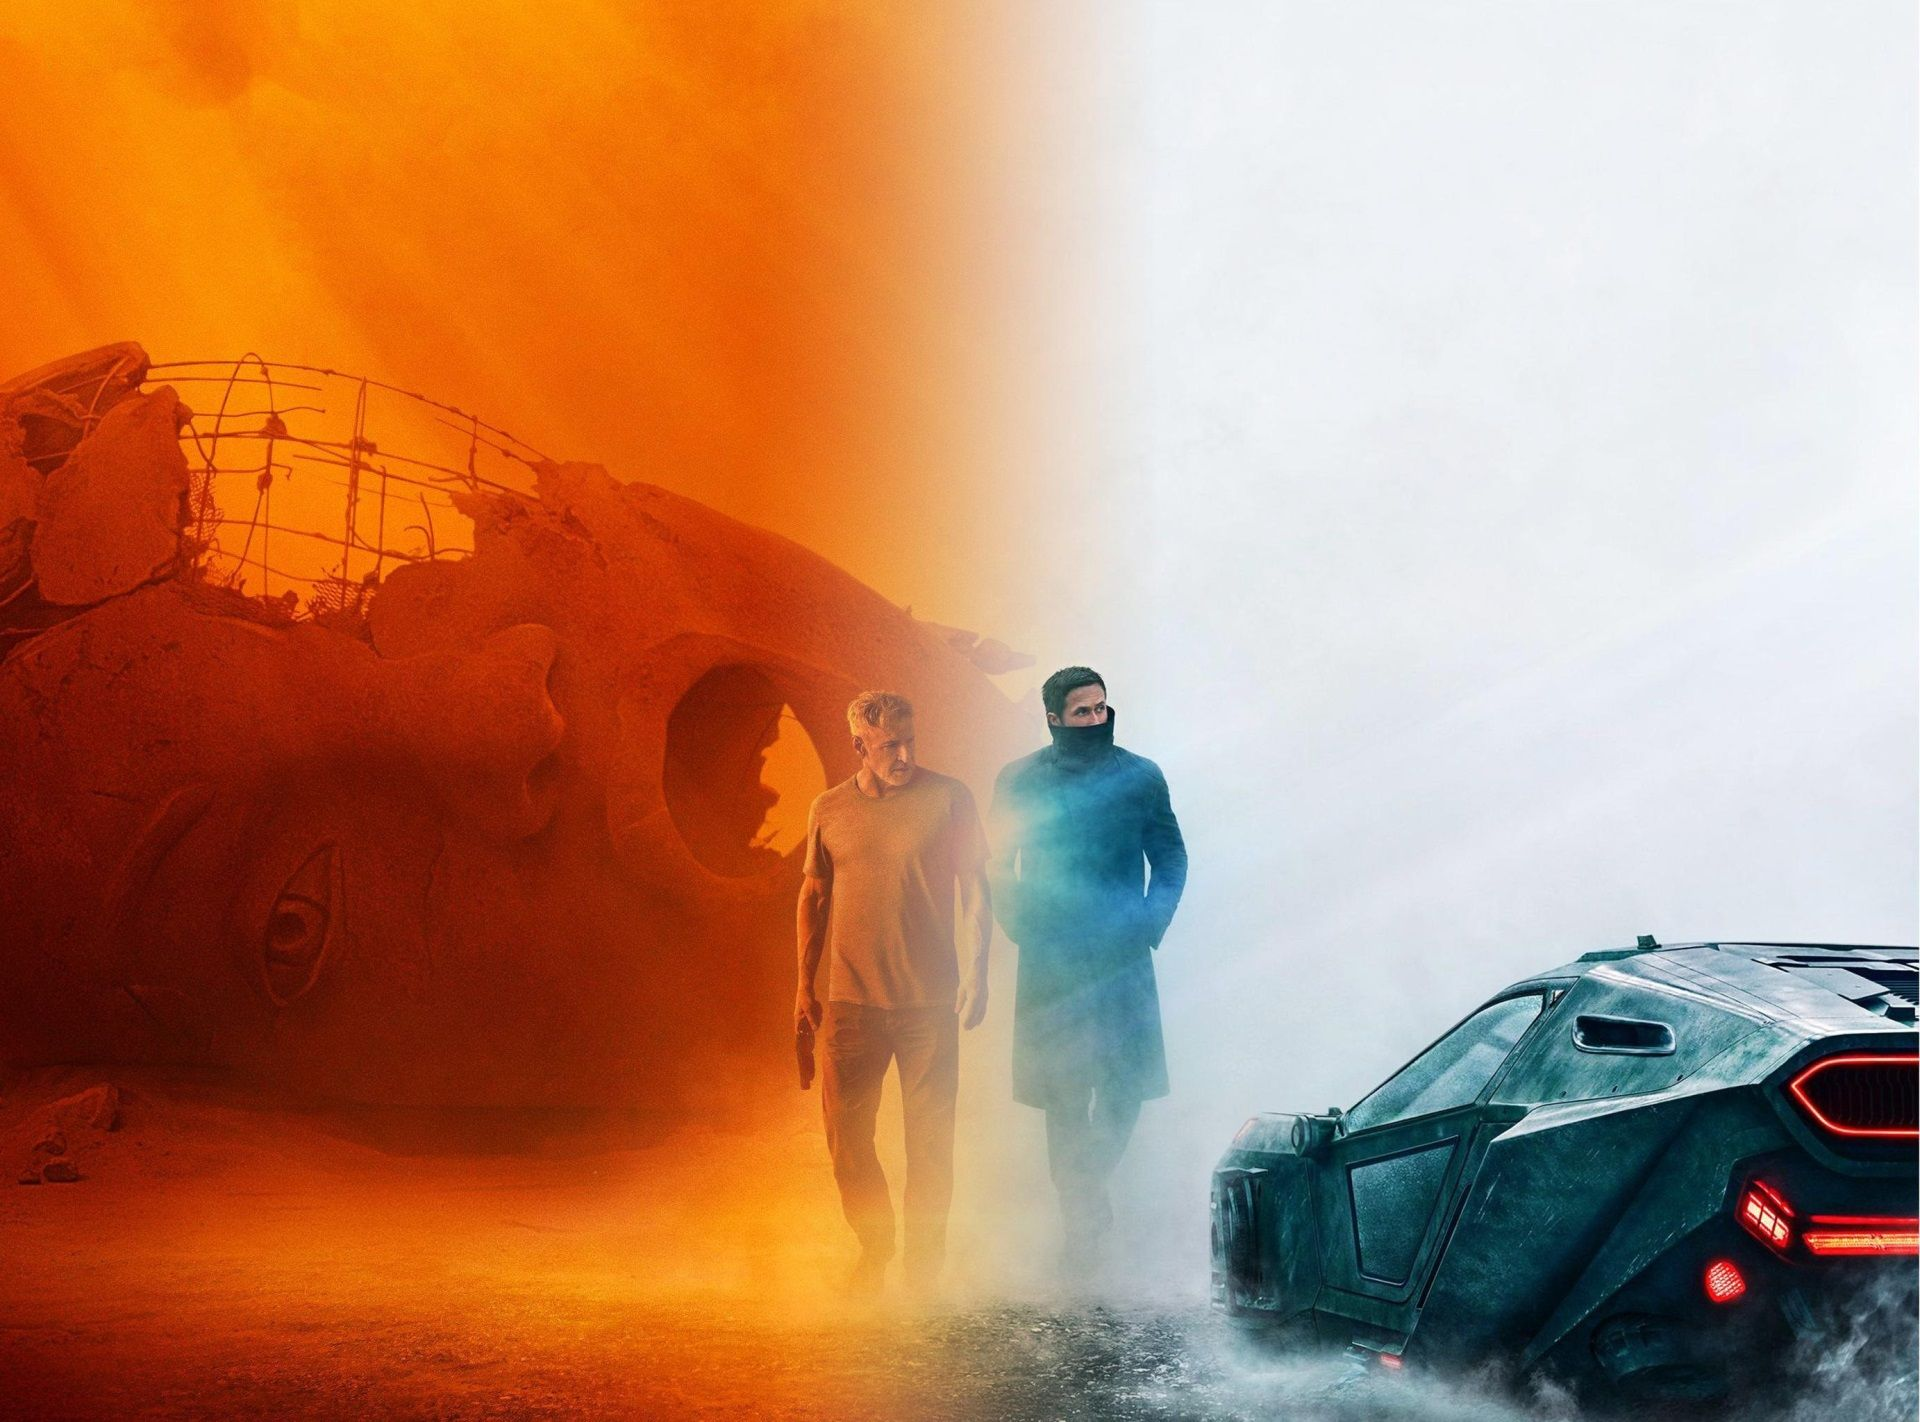 1920x1422 blade runner 2049 backgrounds free download